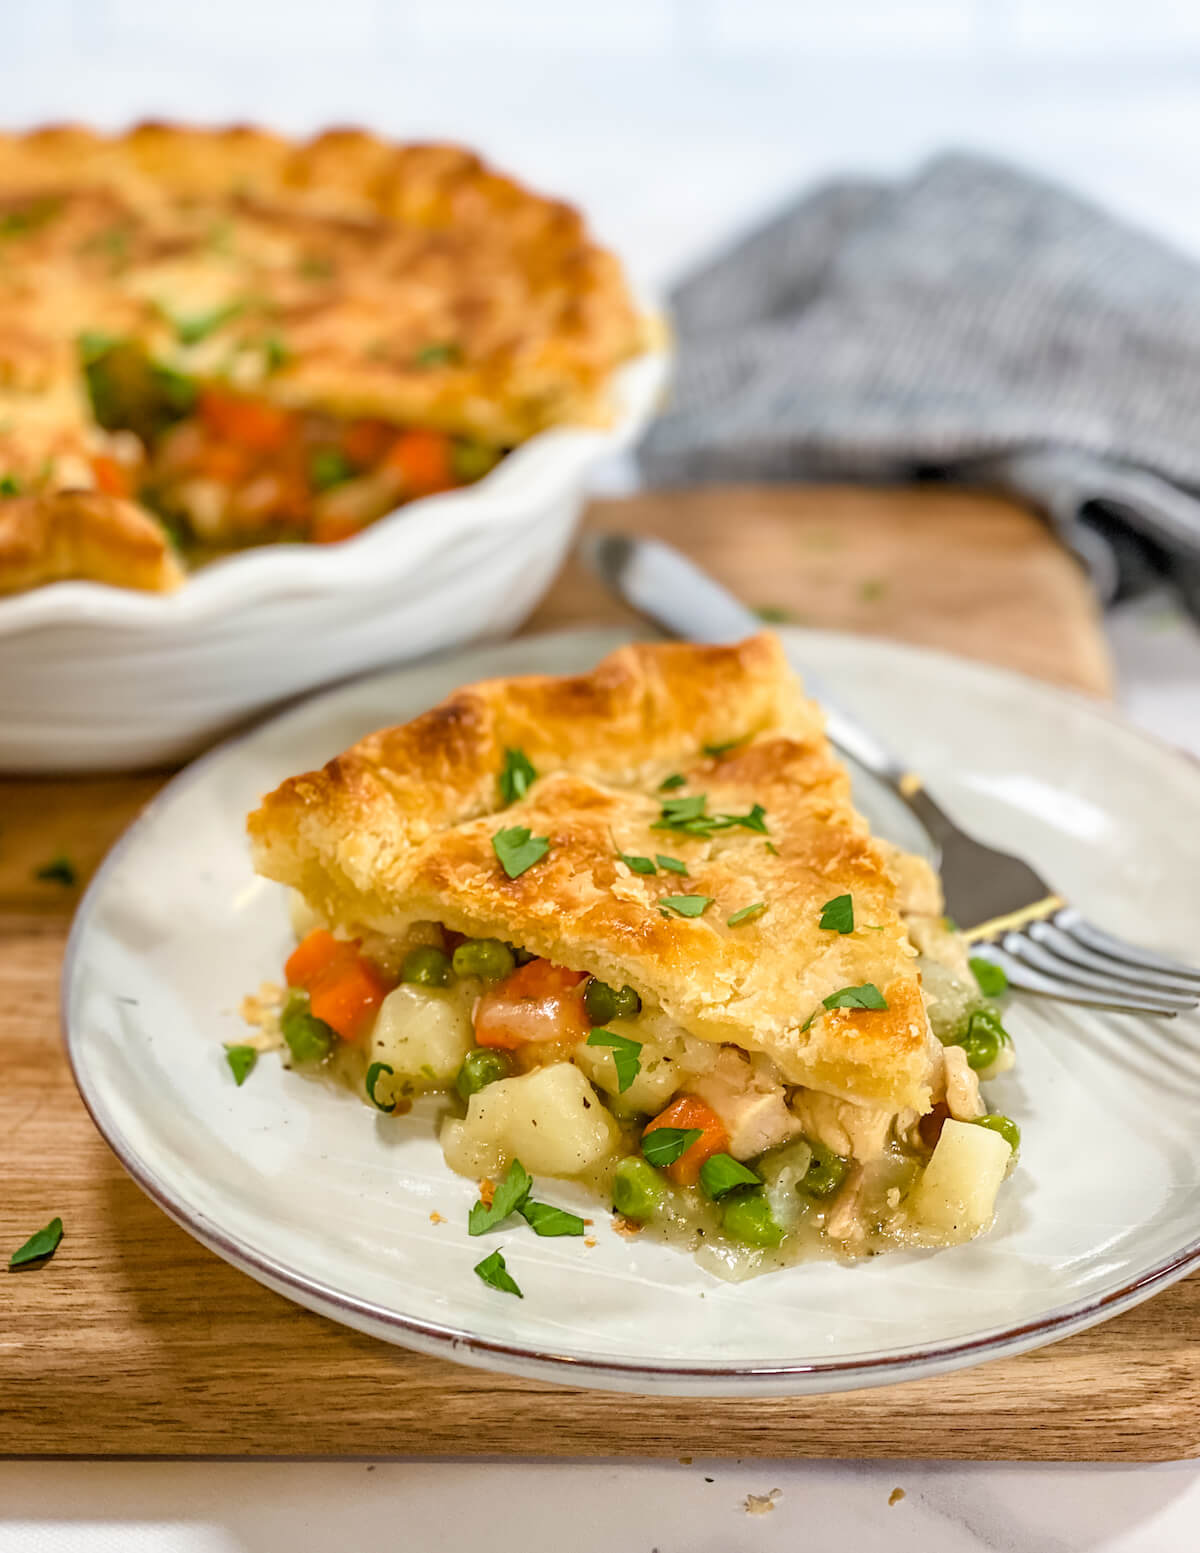 slice of turkey pot pie on a plate with parsley